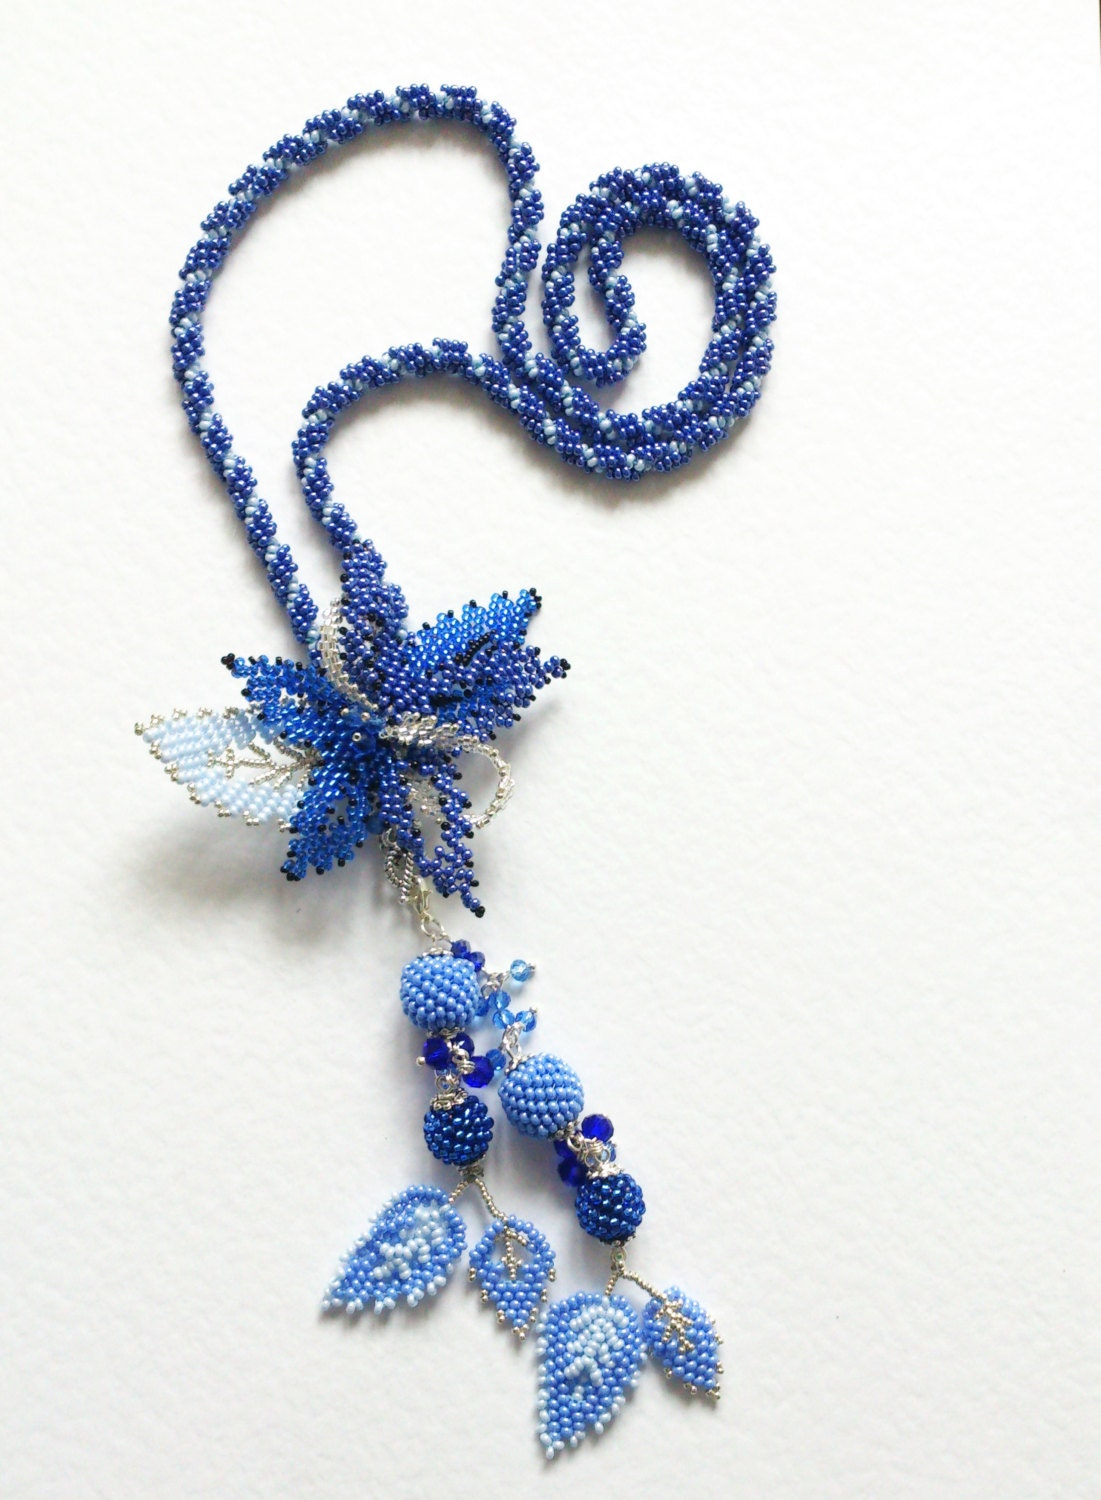 bead woven necklace pendant brooch 3 in 1 set blue braided